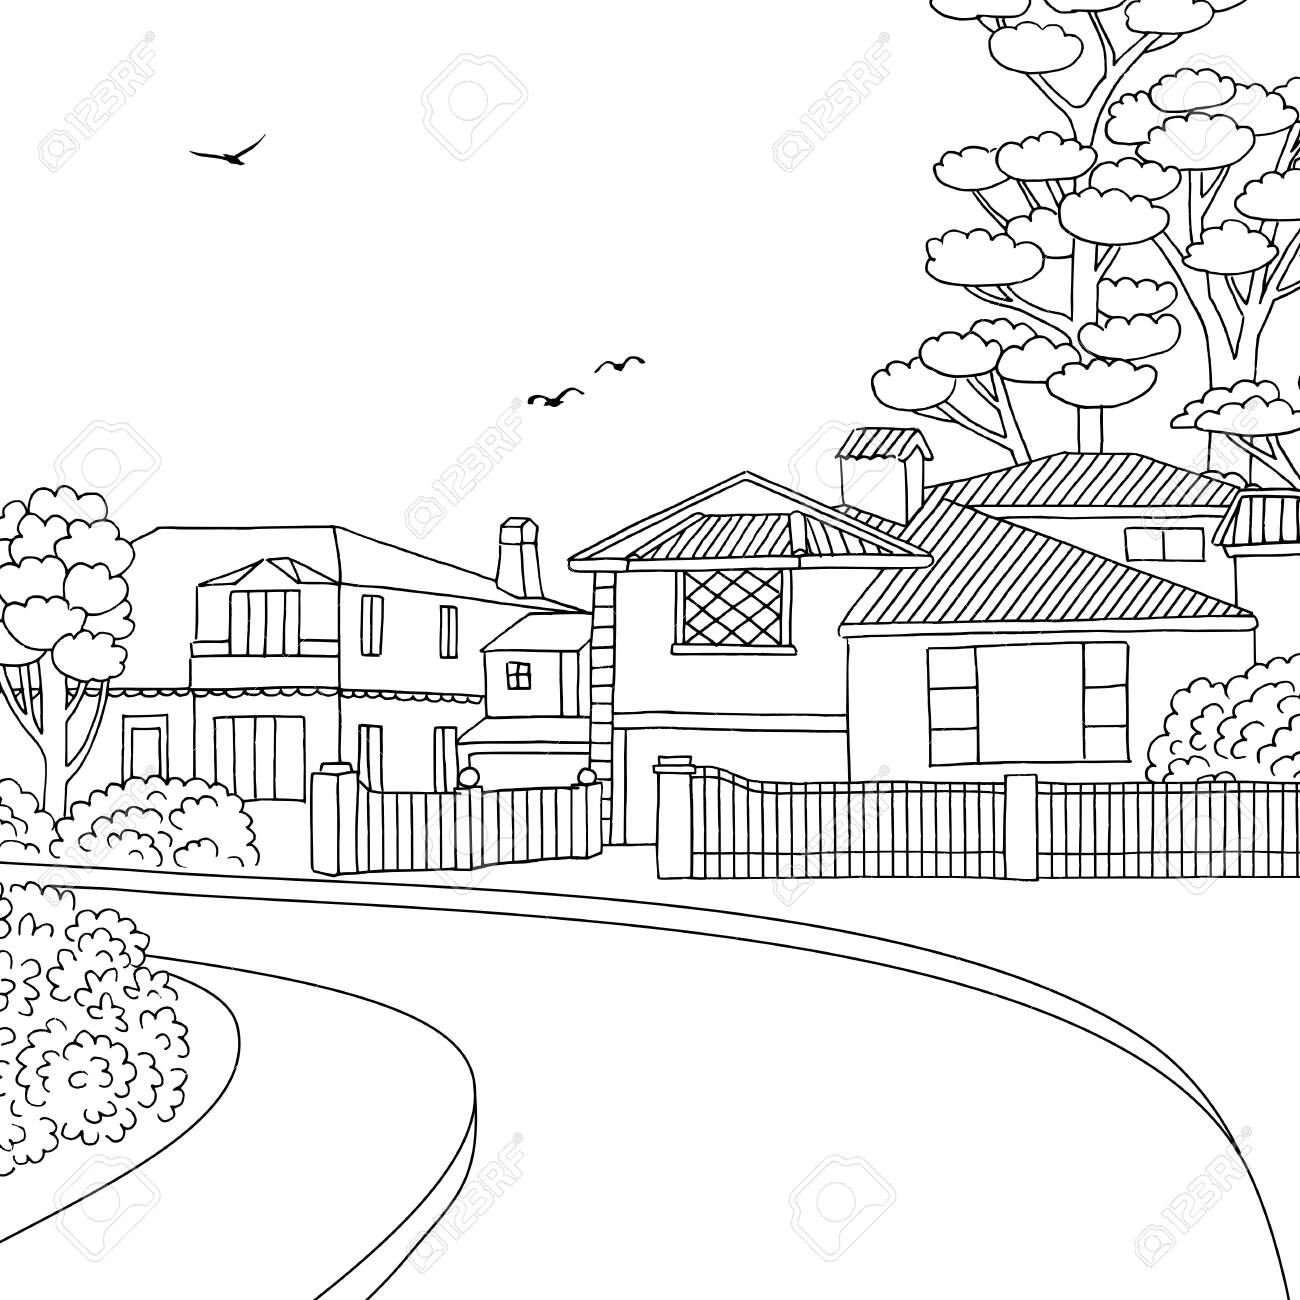 Hand drawn black and white illustration of a middle class suburban neighbourhood with houses, yard, pavement and trees - 128803680